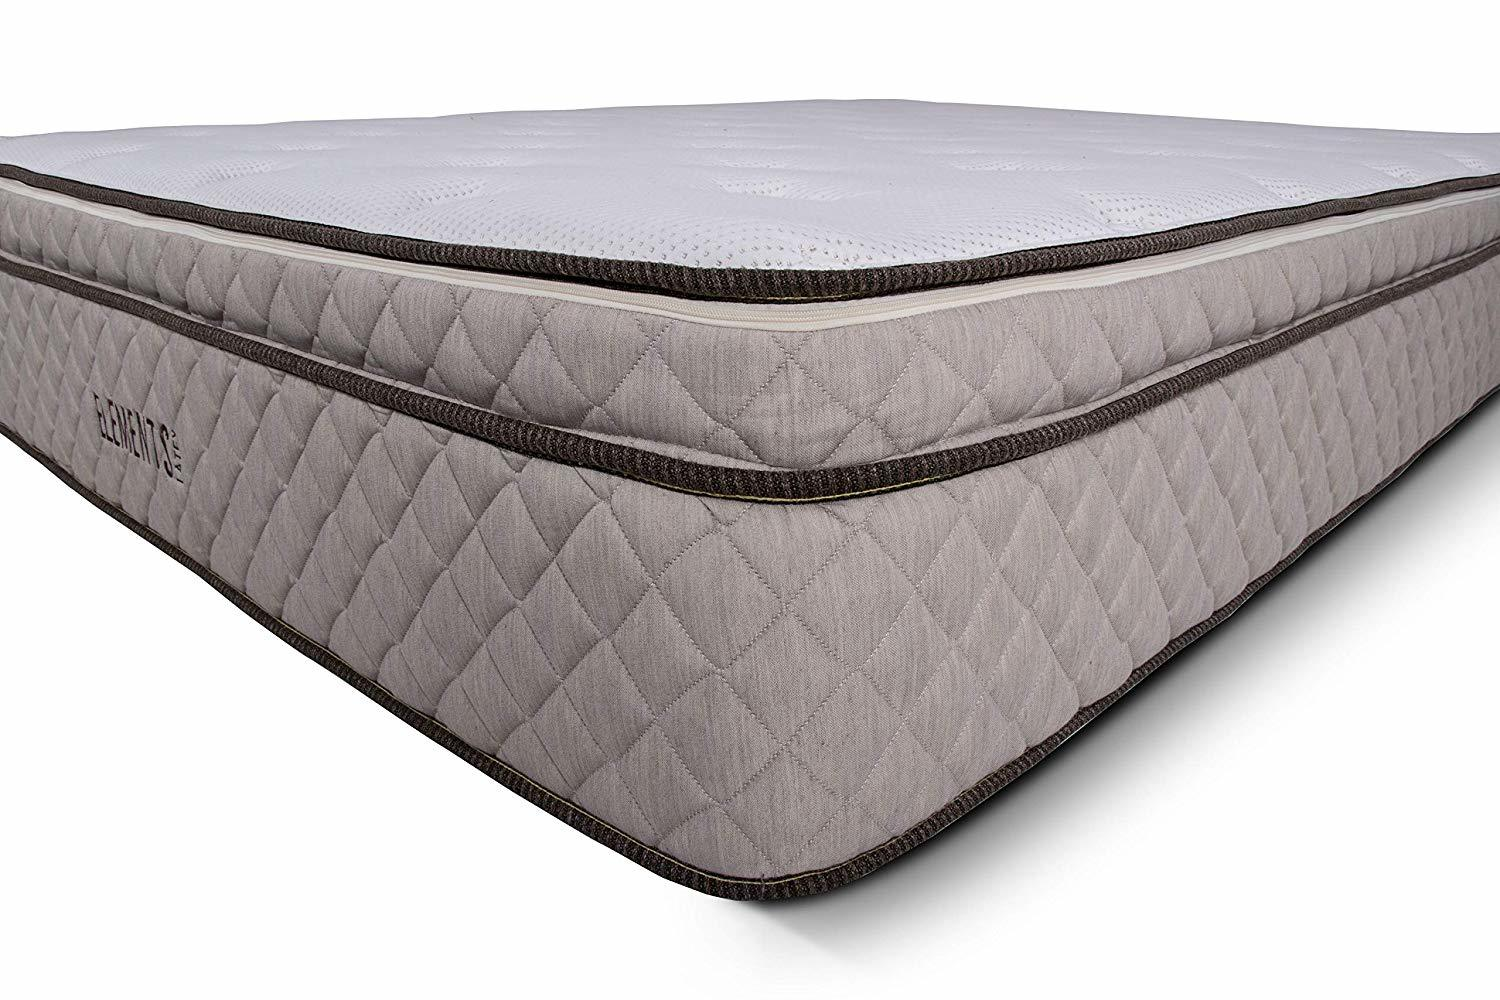 Ultimate Dreams Eurotop Latex Mattress Review Cuddly